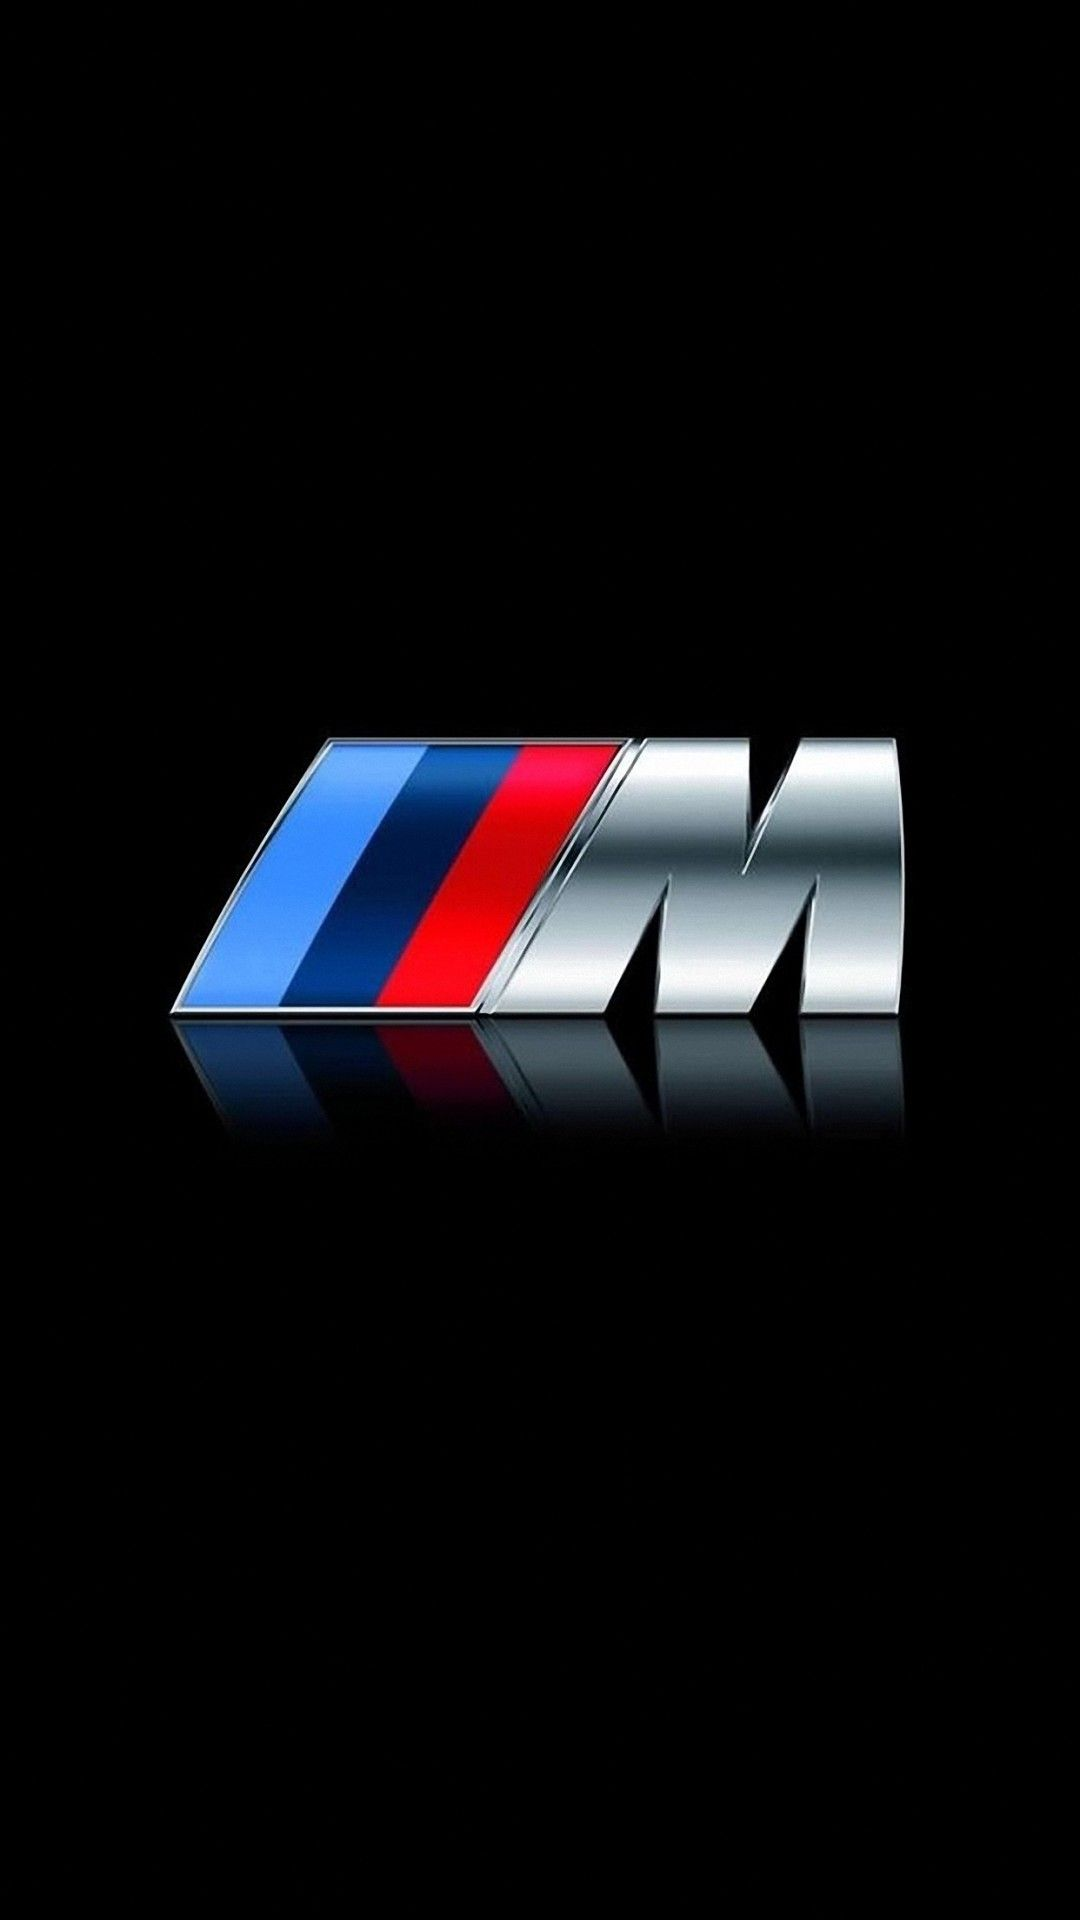 Bmw M4 Logo : Wallpaper, Images), Iphone, Wallpaper,, Wallpapers